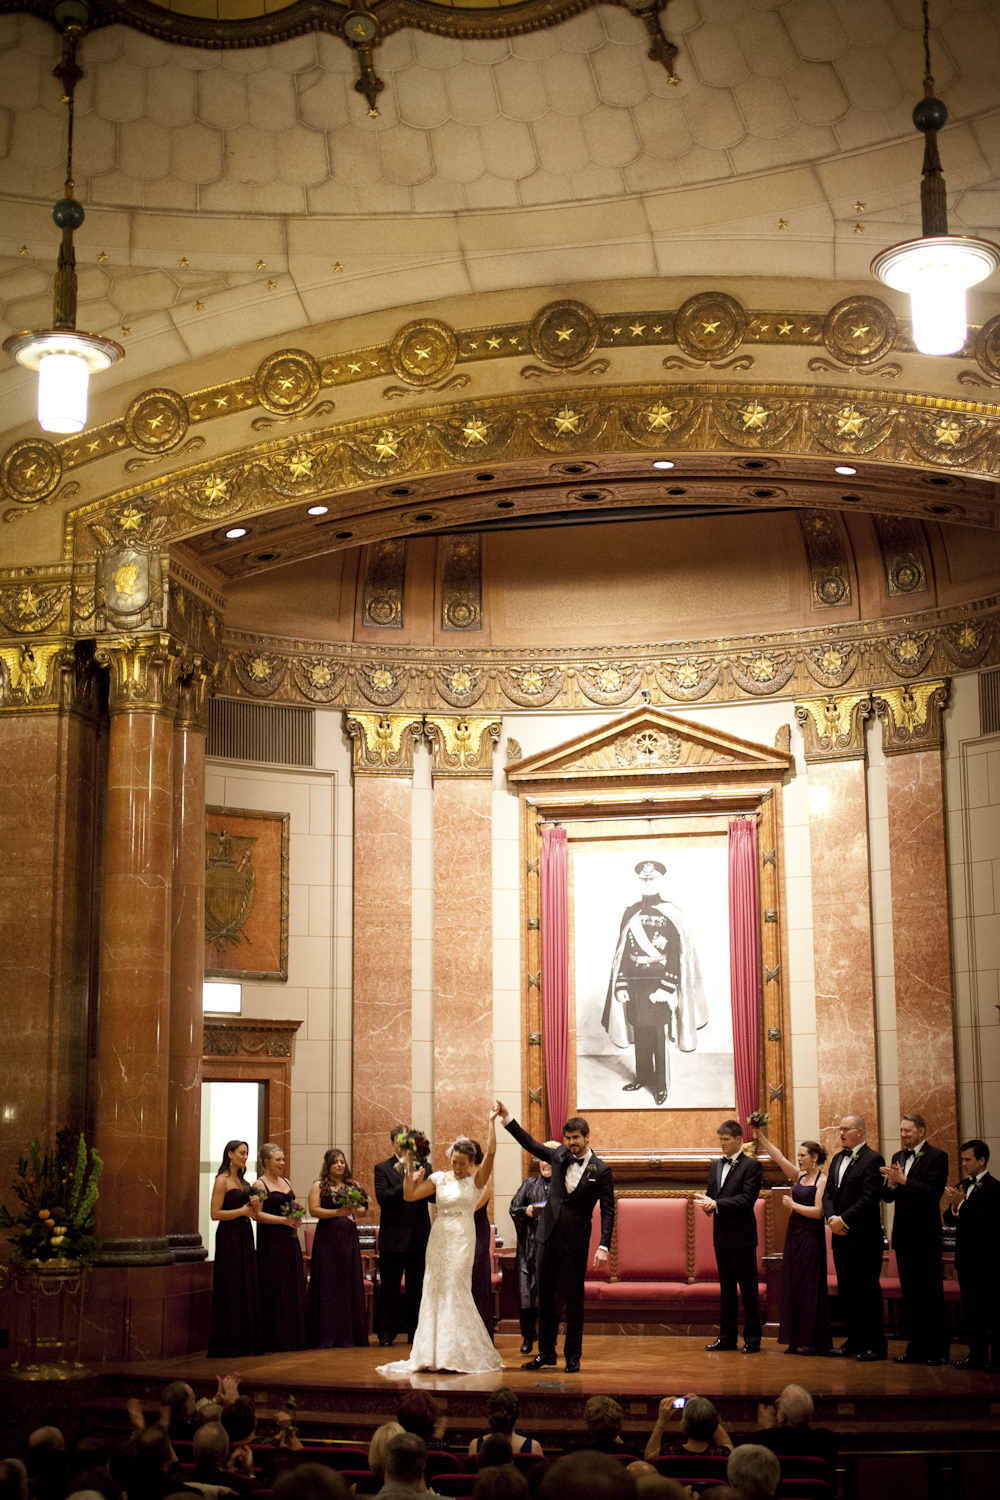 Indianapolis-Indiana-War-Memorial-Wedding-Photographer-Crowes-Eye-Photography-Bride-Groom-Ceremony-373.jpg